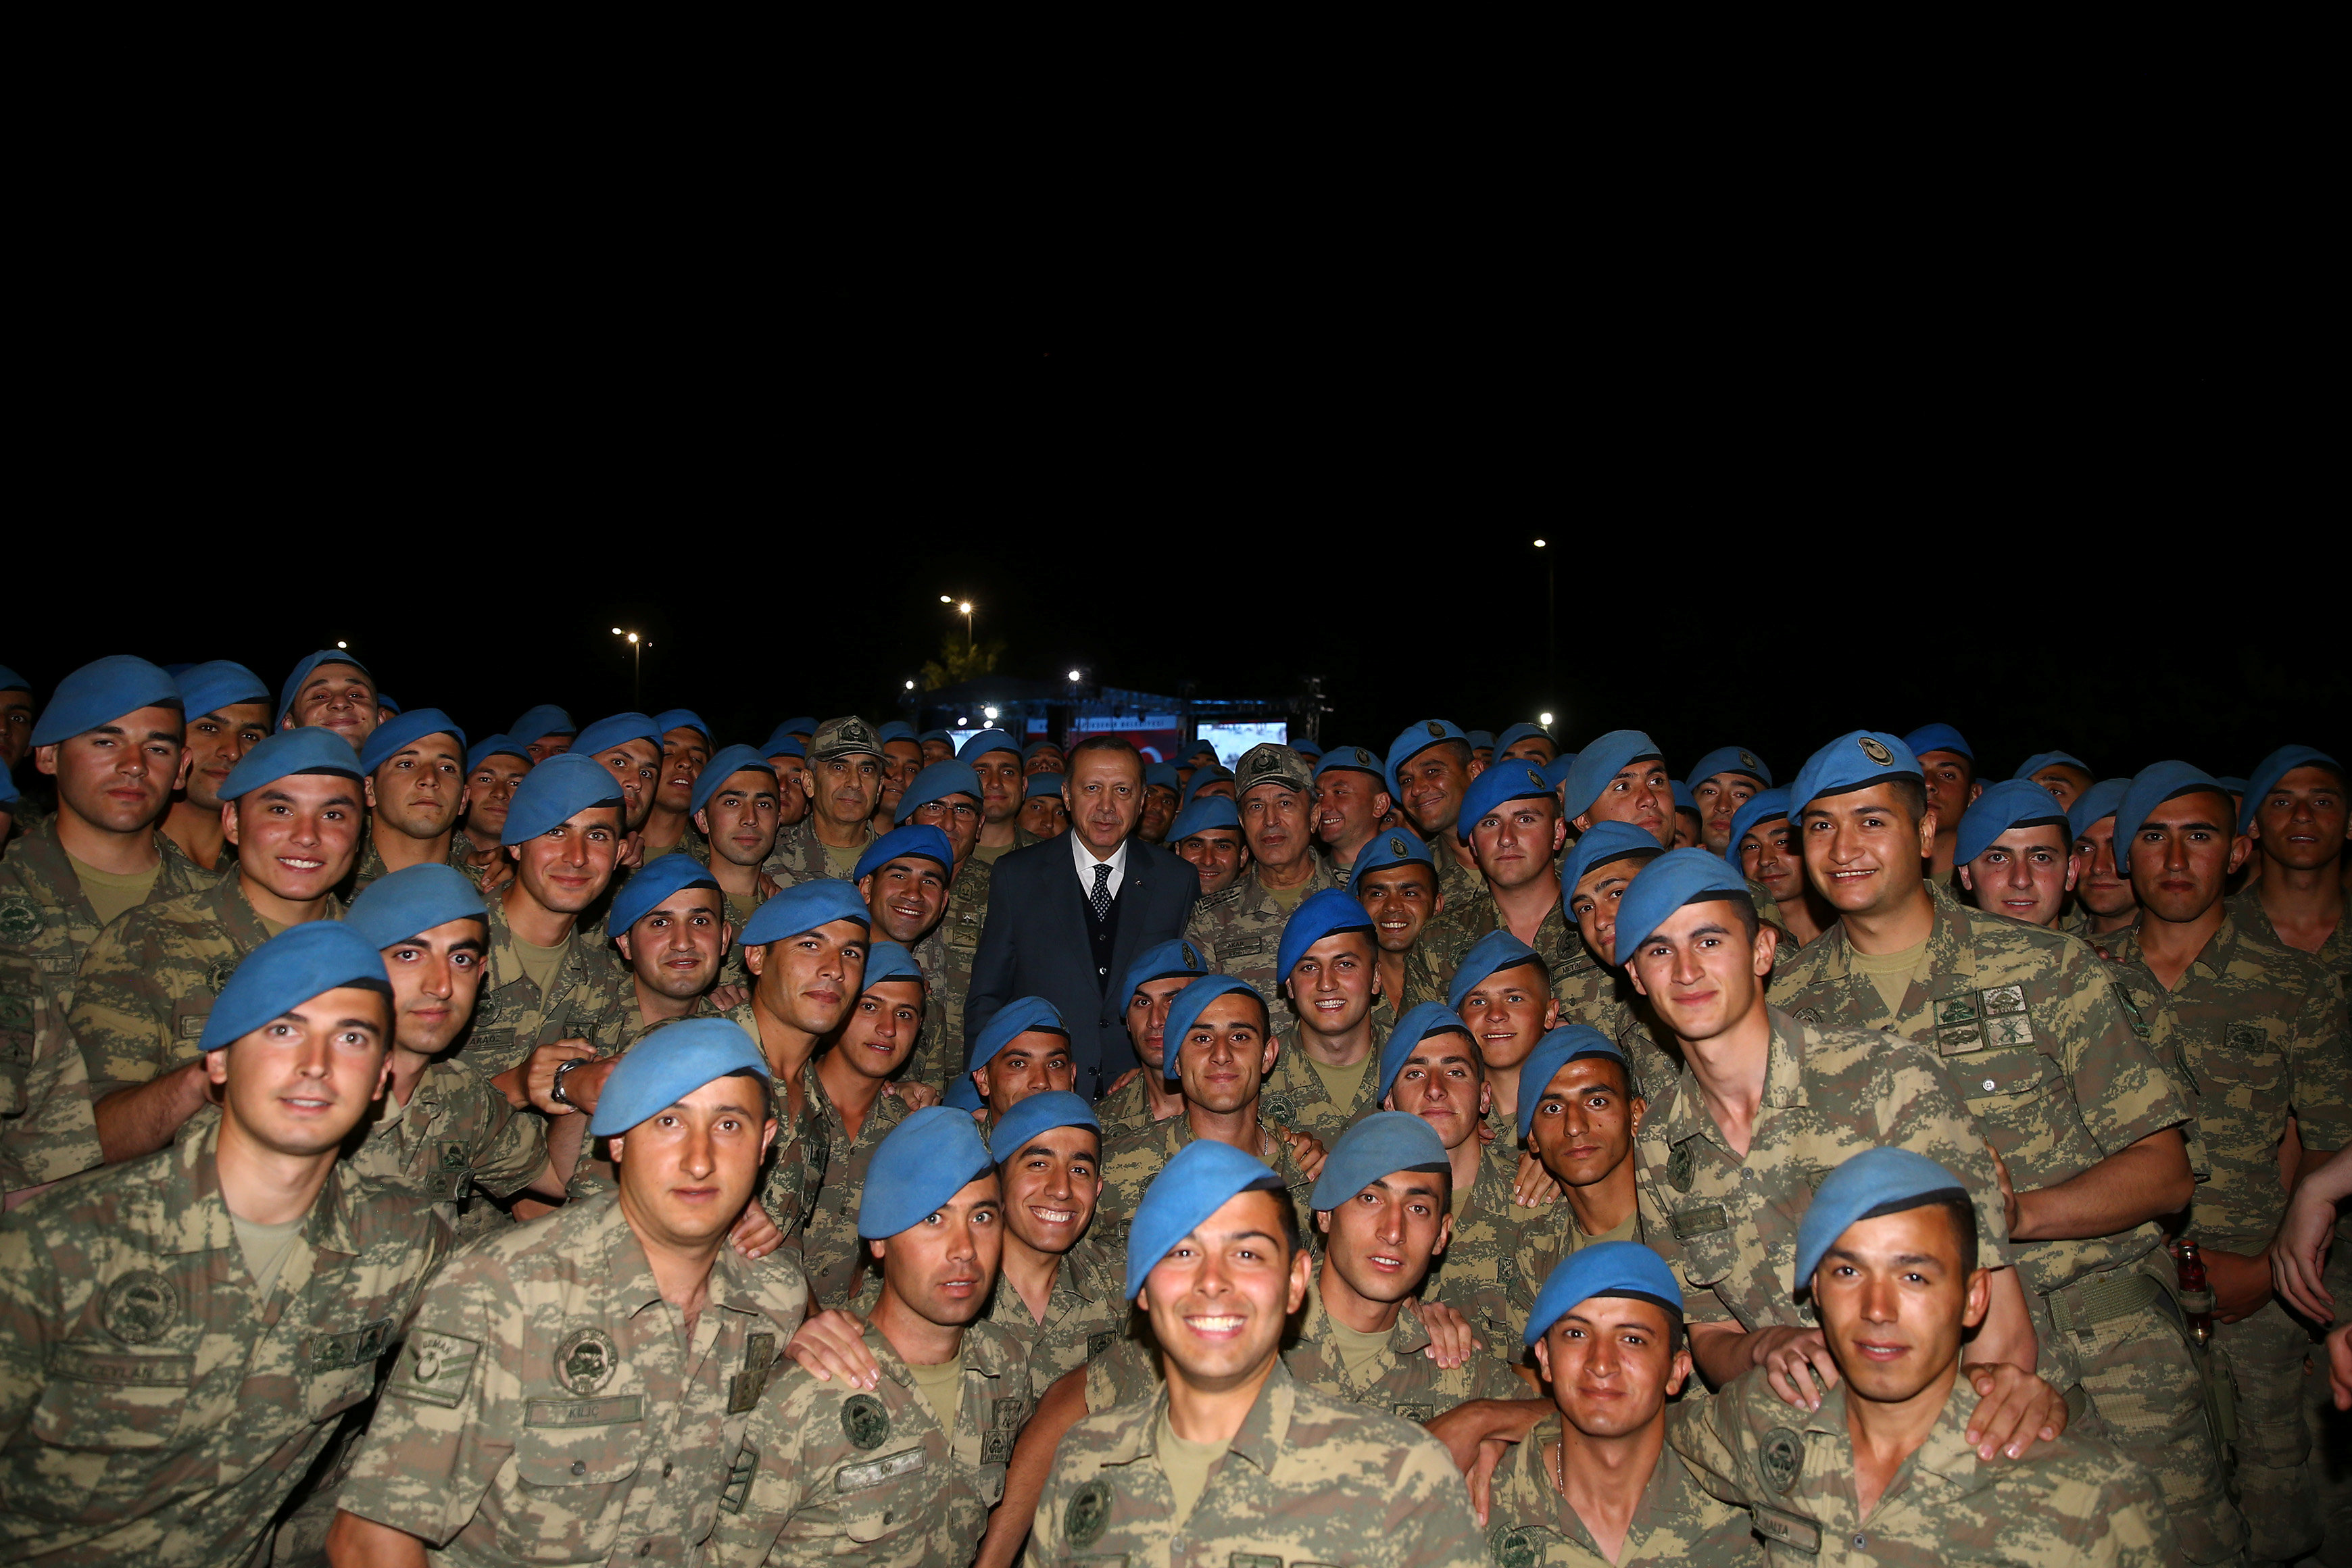 Turkish President Tayyip Erdogan poses with commandos following a fast-breaking iftar dinner at the 1. Commando Brigade in Kayseri, Turkey on June 8, 2017. (Kayhan Ozer/Presidential Palace/Handout via REUTERS)